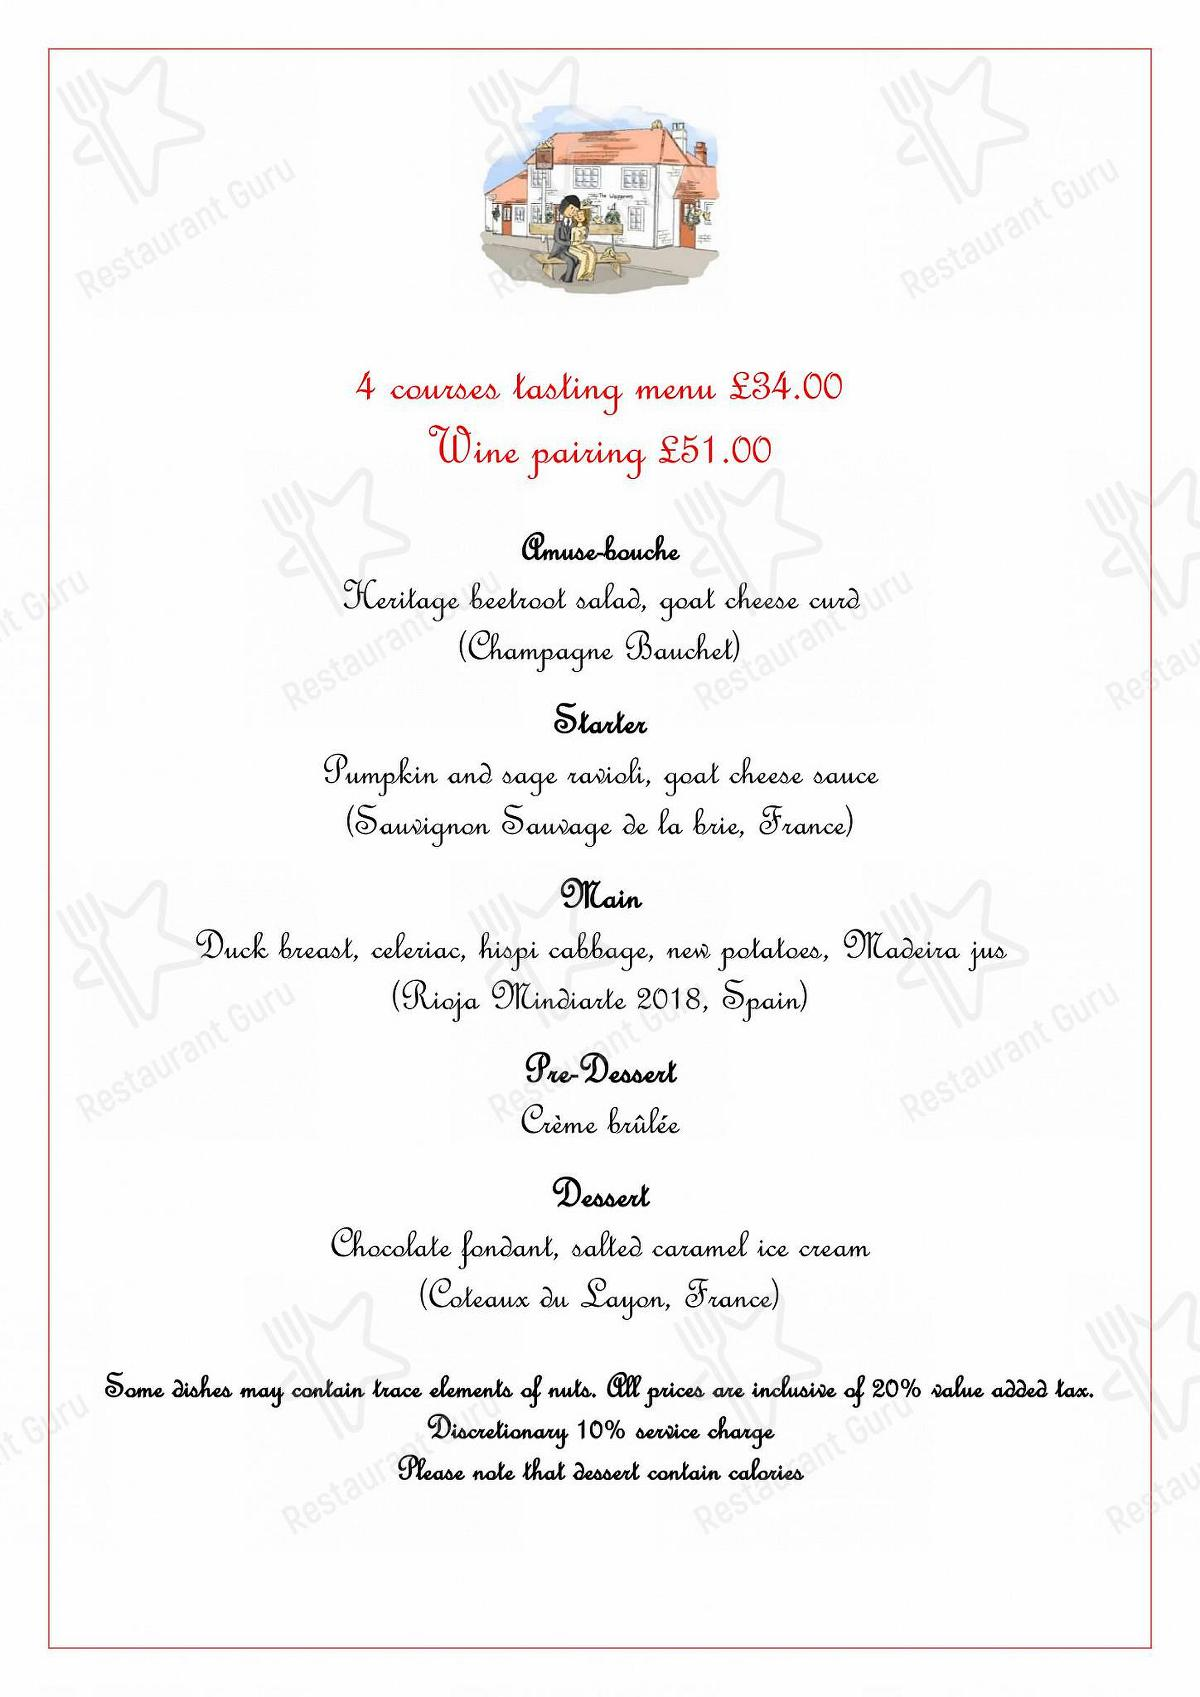 Check out the menu for The Waggoners